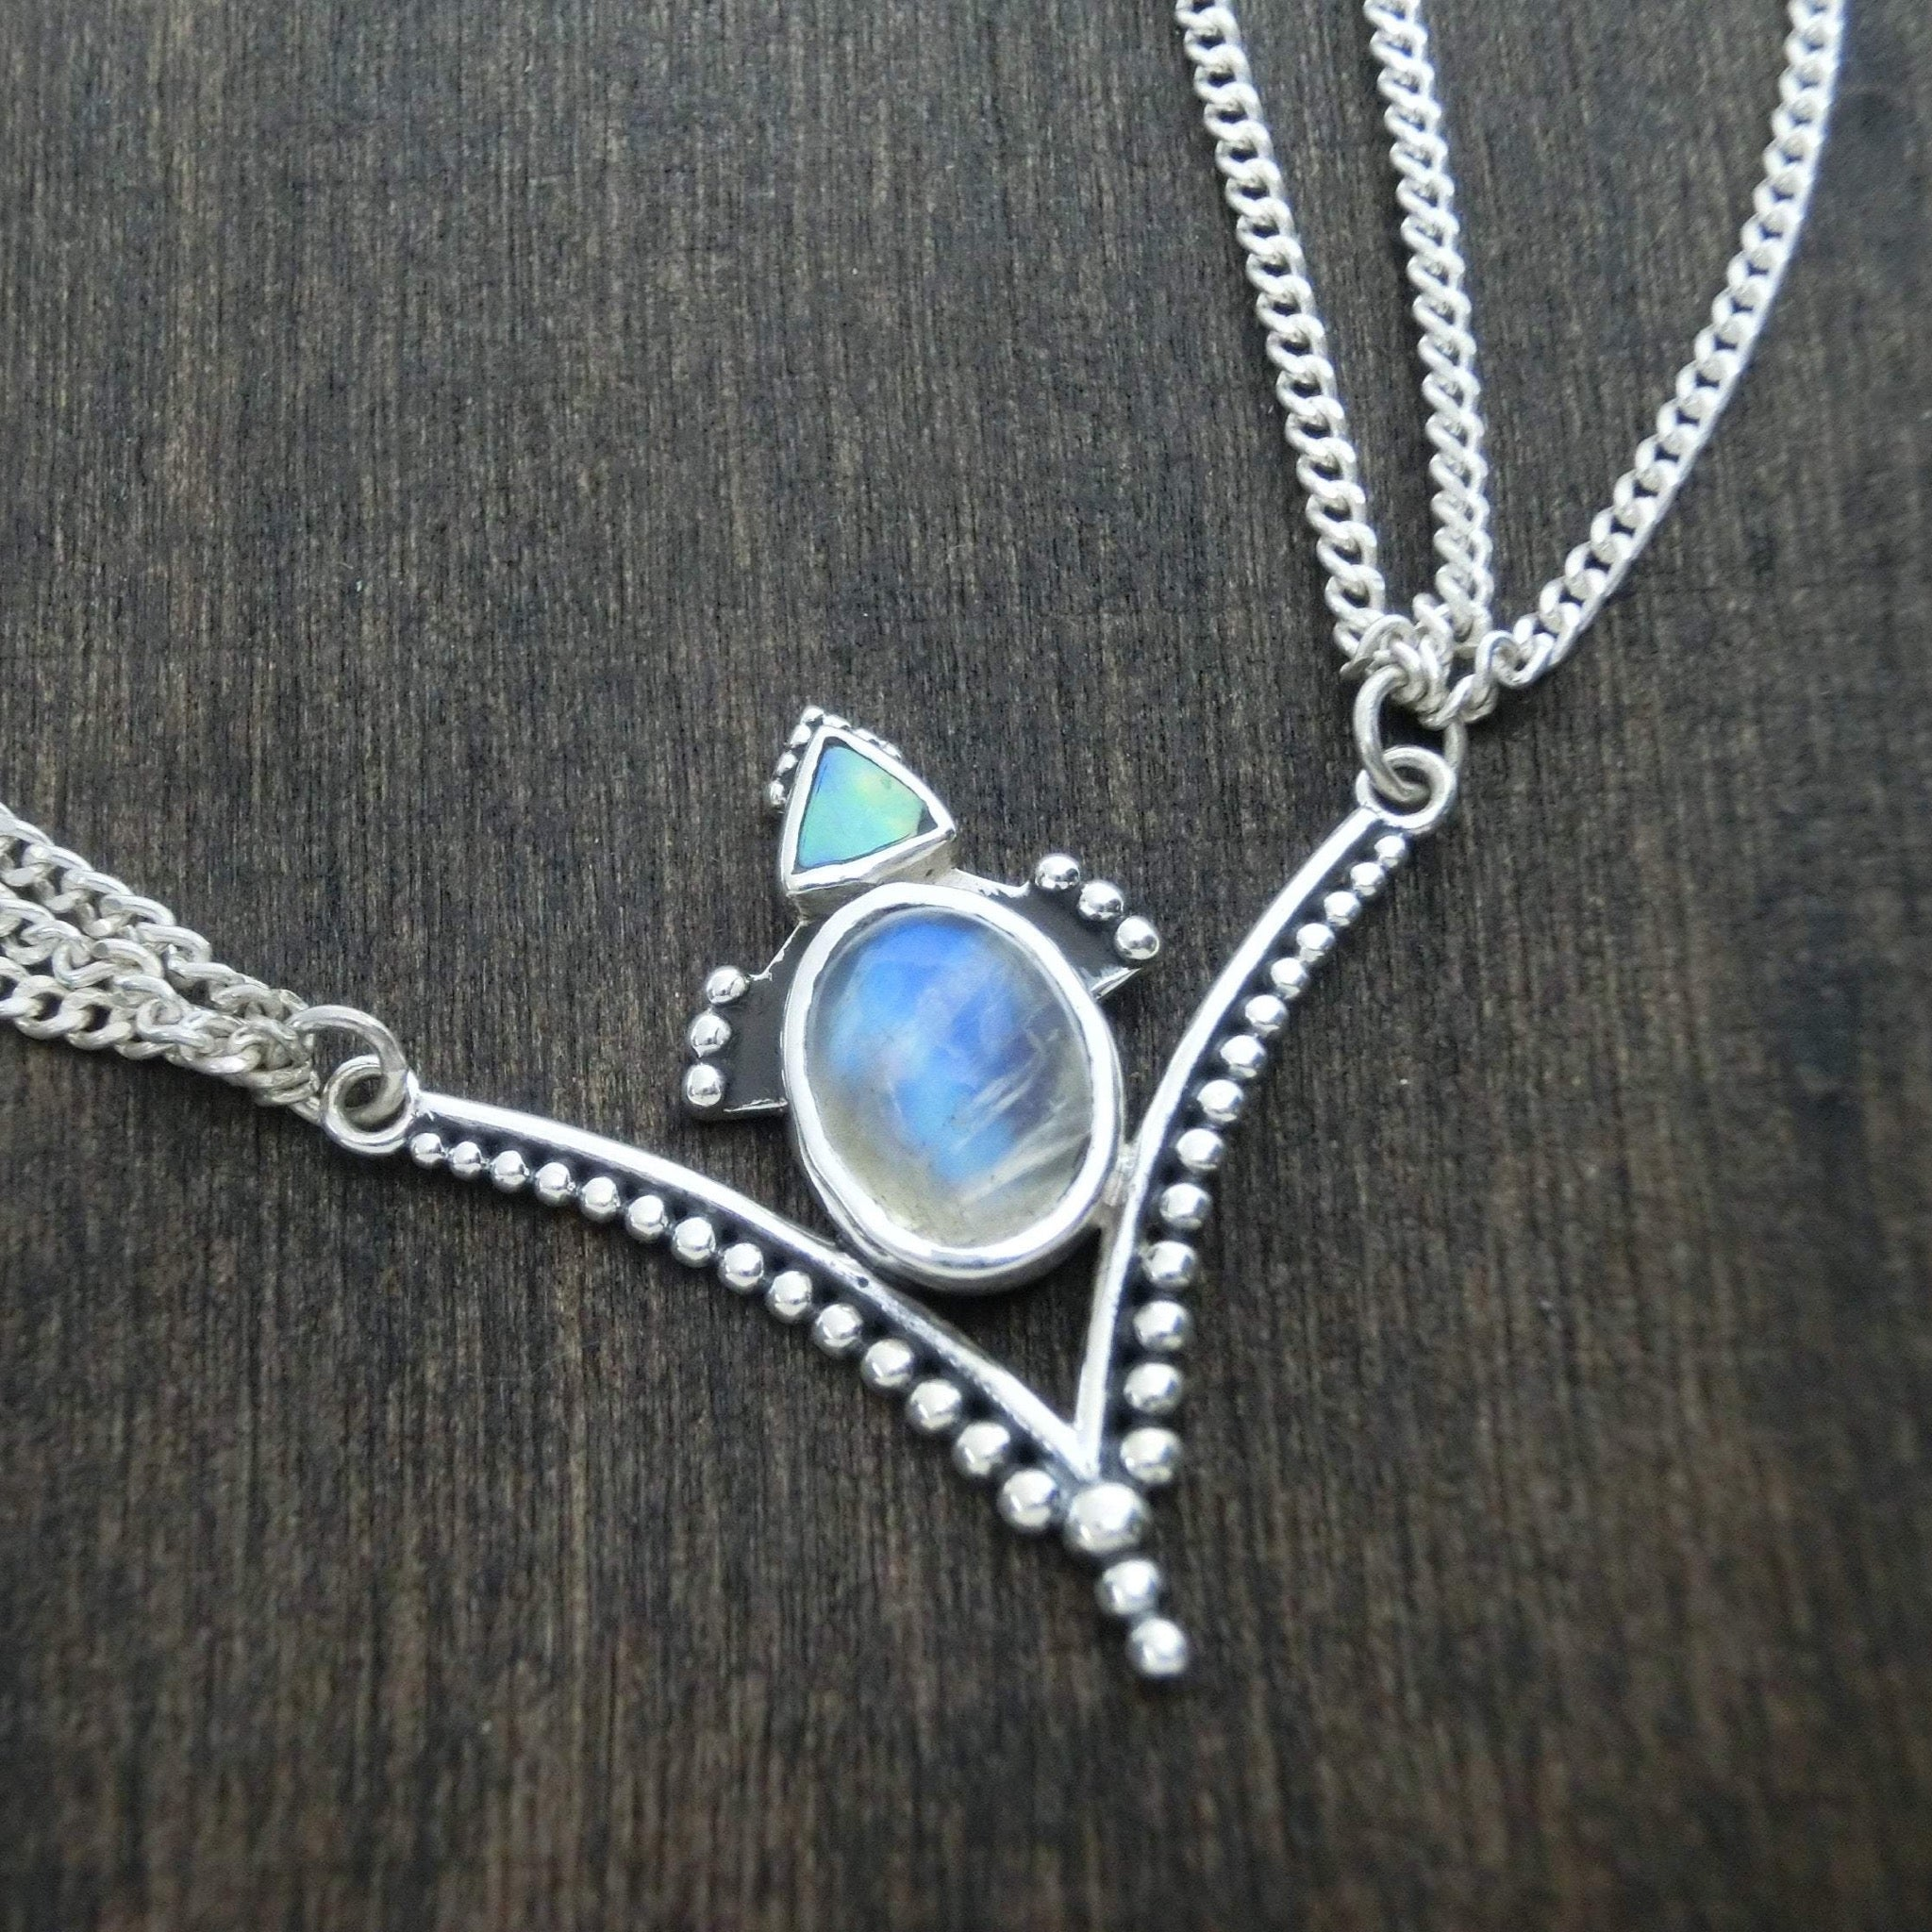 moonstone silver head chain festival accessory